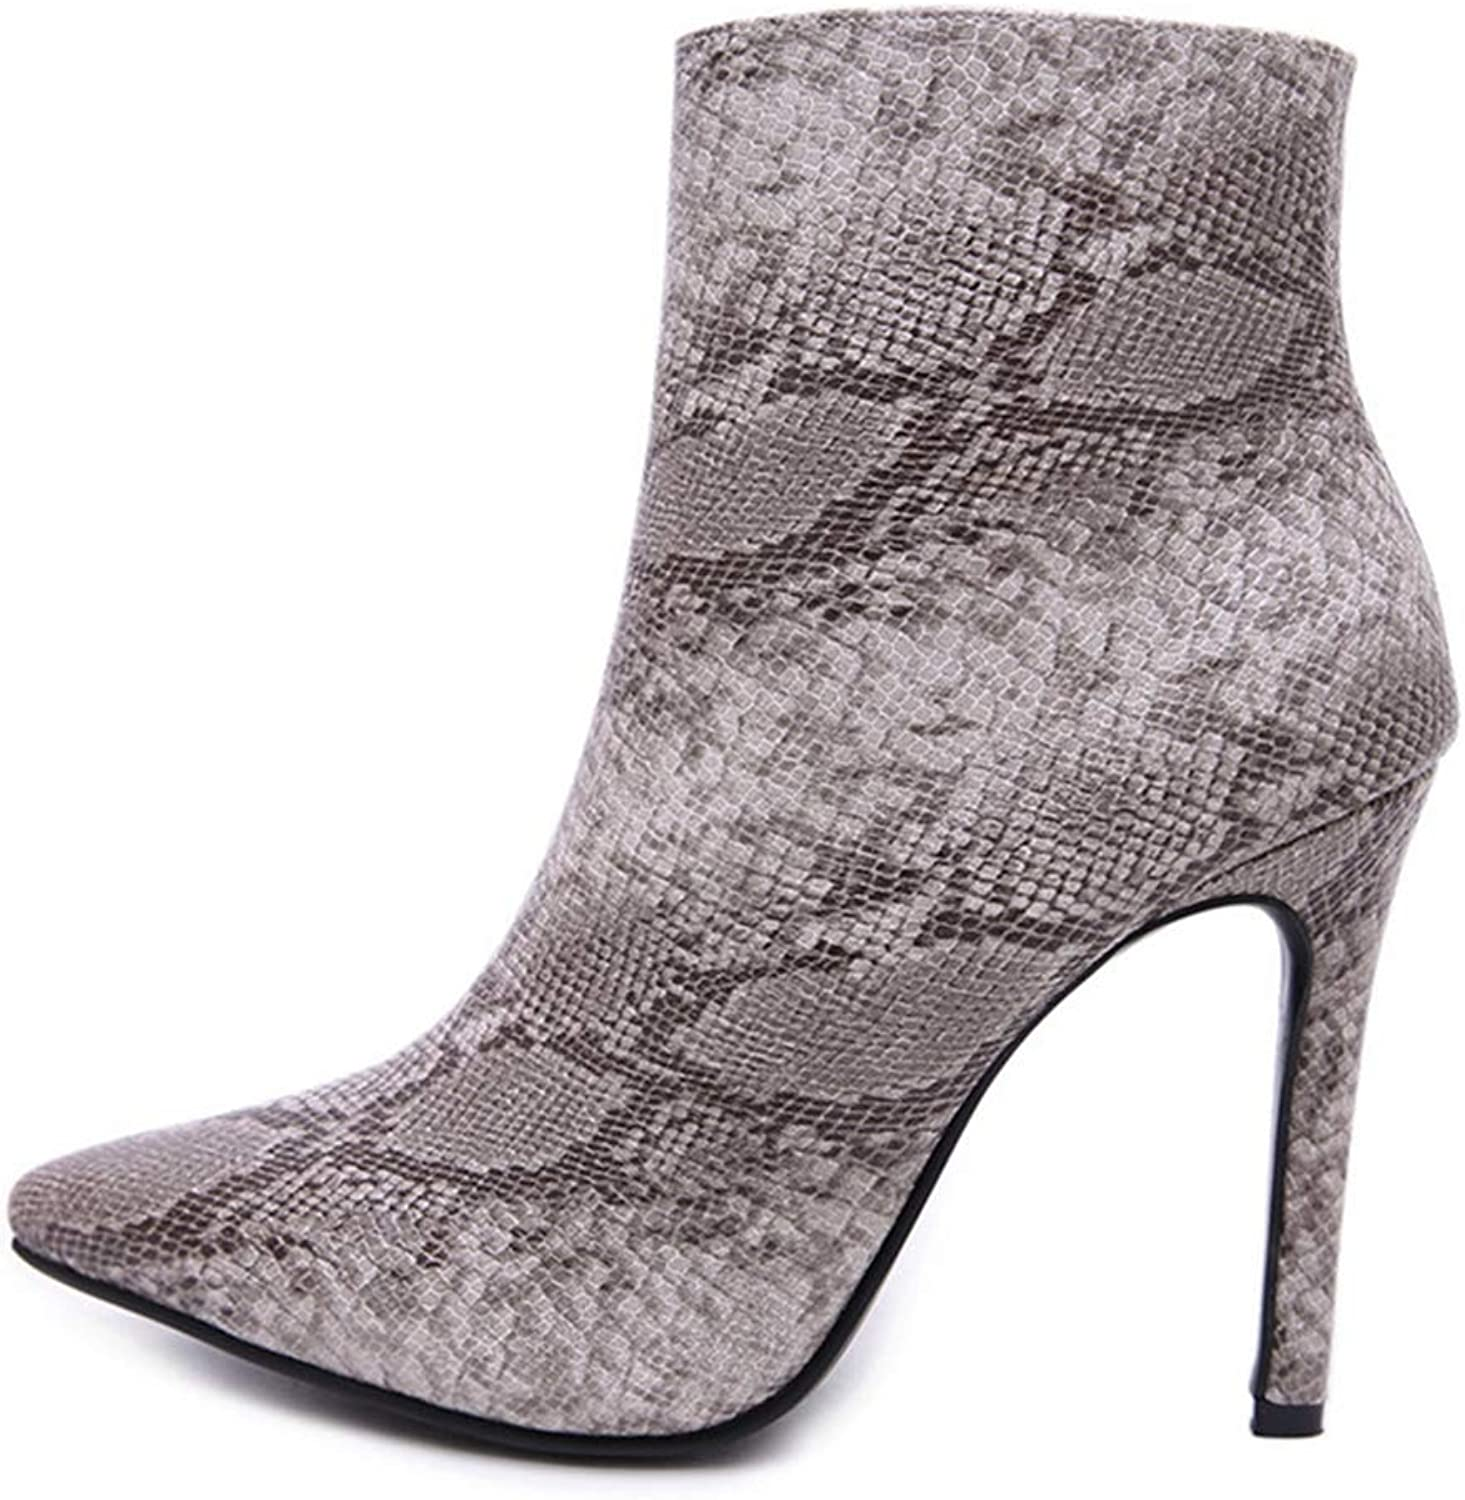 CYBLING Pointed Toe Ankle Boots for Women Sexy Snake Skin Stiletto High Heel Dress Booties